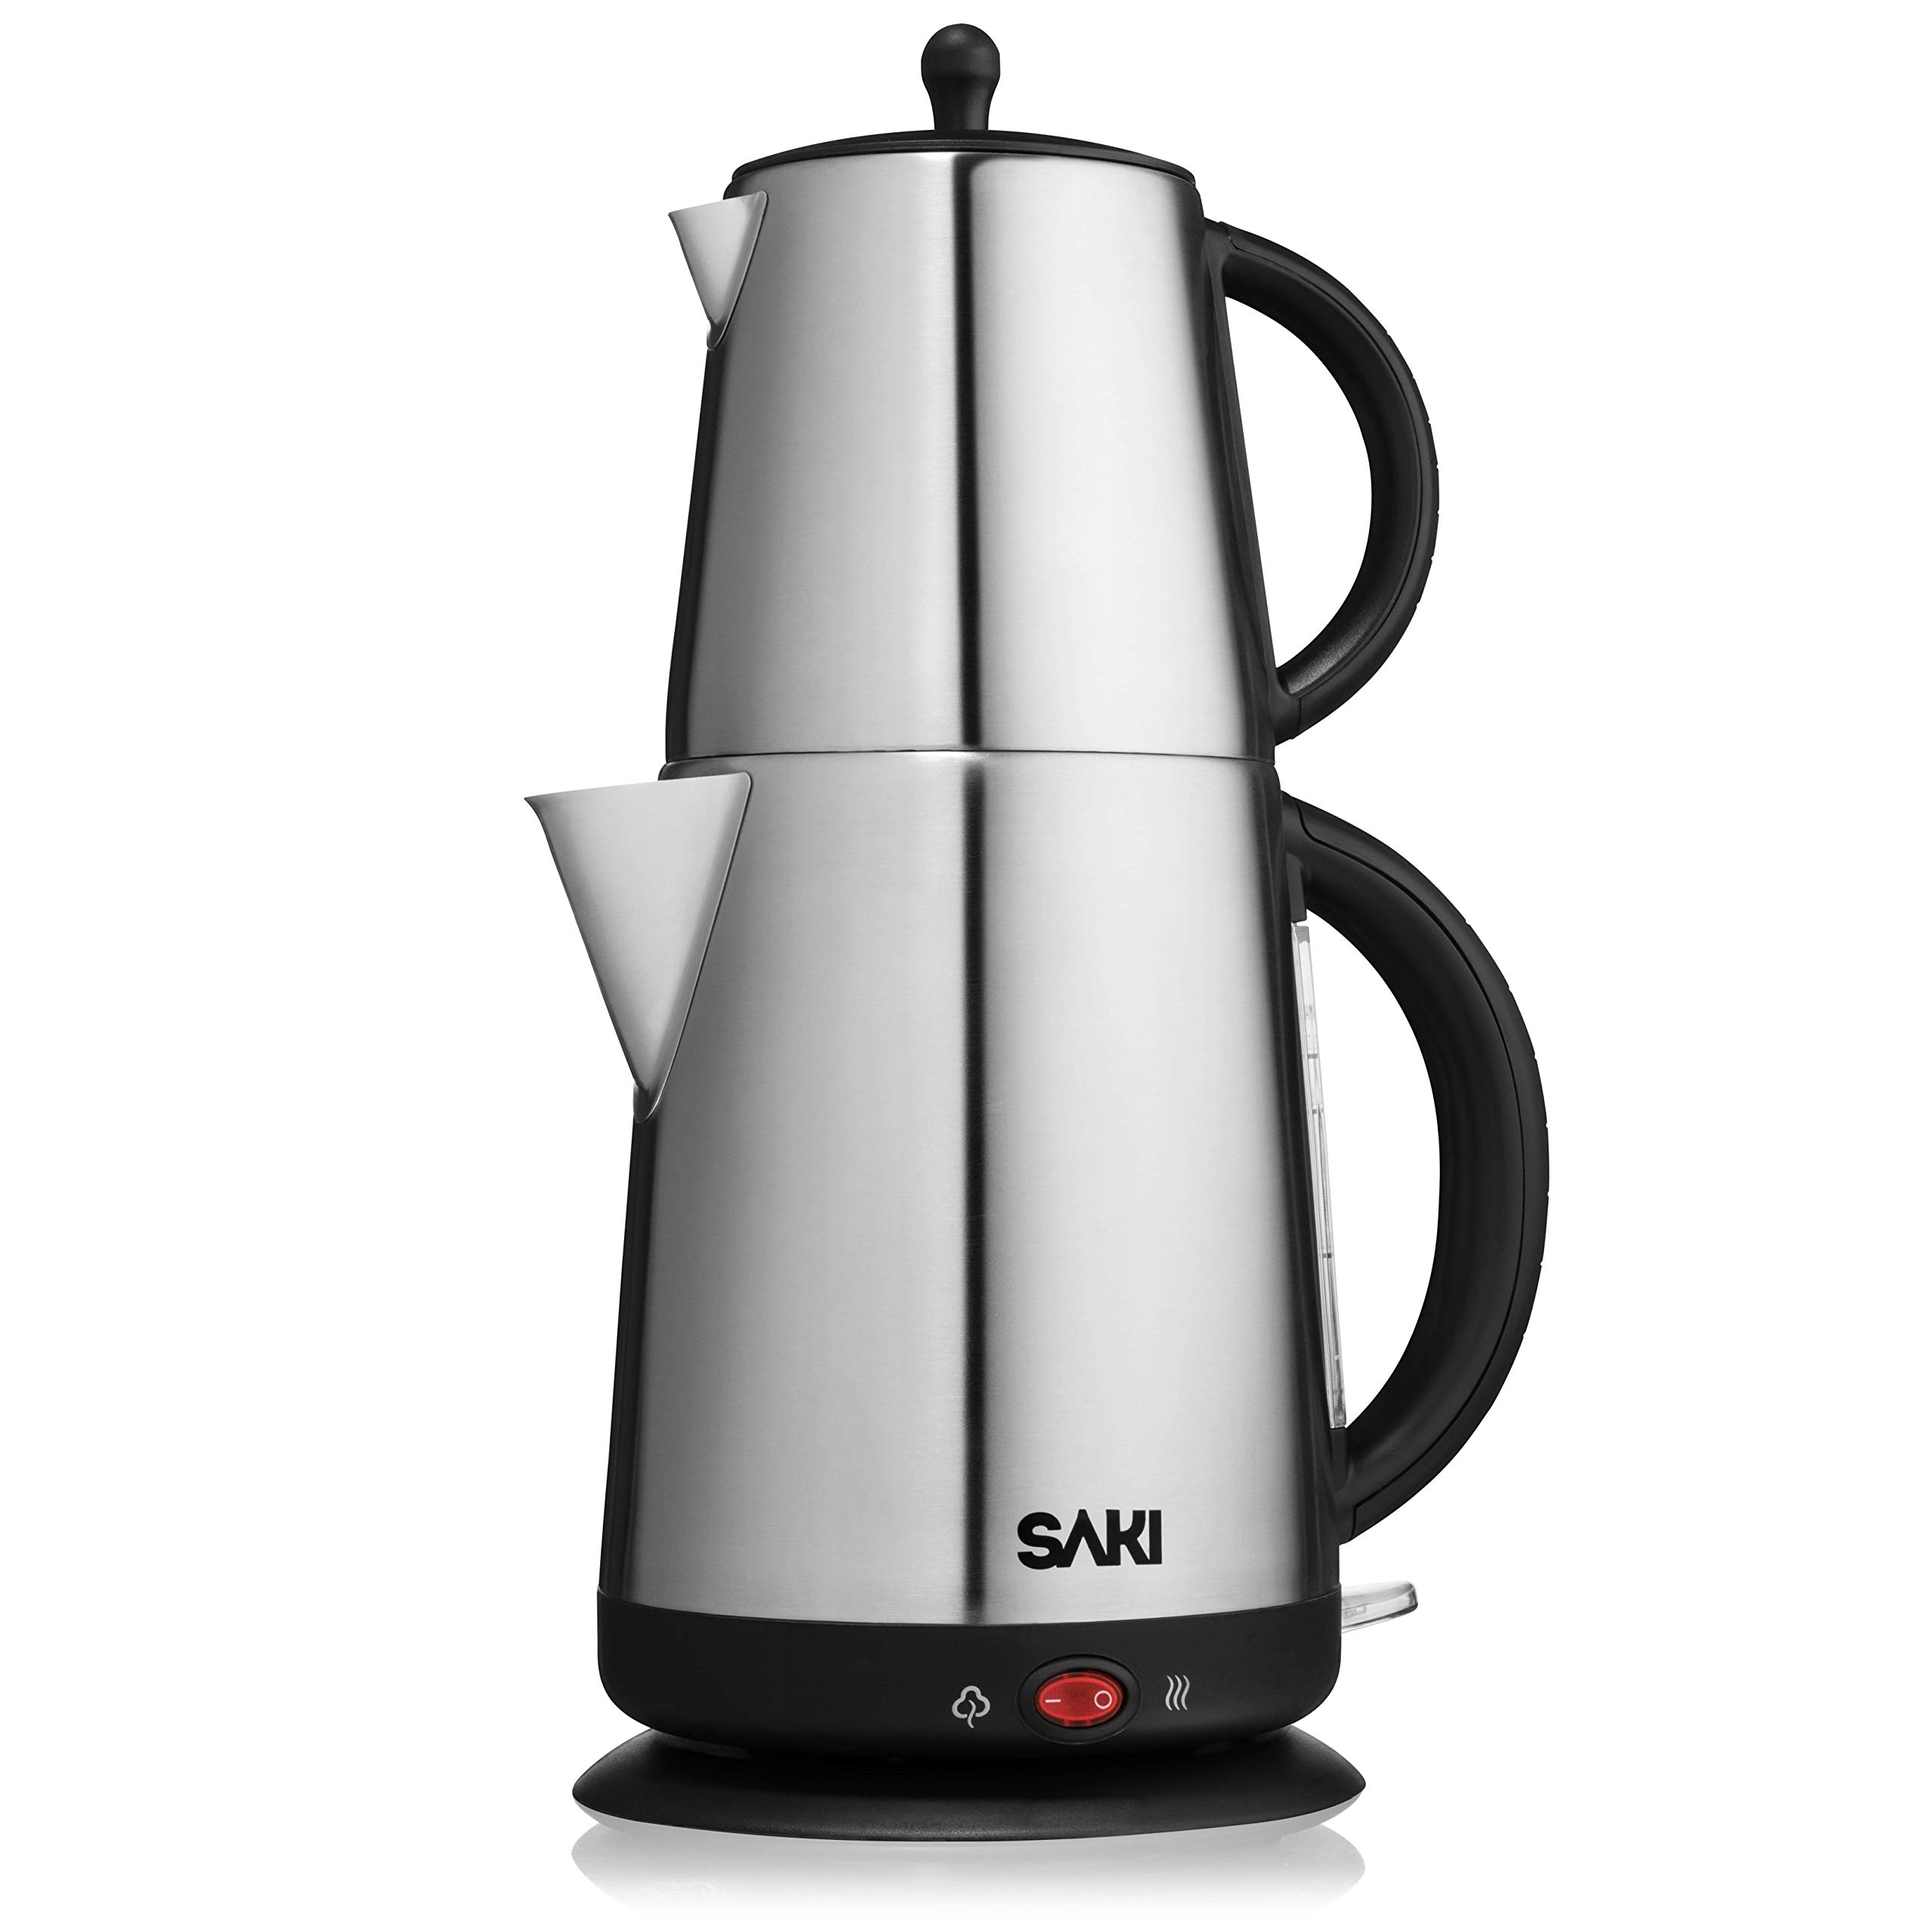 Saki Tea Maker - 1.7 L,110 V -Electric Kettle with Tea Infuser Teapot, Water Heater Thermostat Control, Keep Warm Mode, Stainless Steel, Boil Dry Overheat Protection - 2 in 1 Tea Kettle Boiler Tea Pot